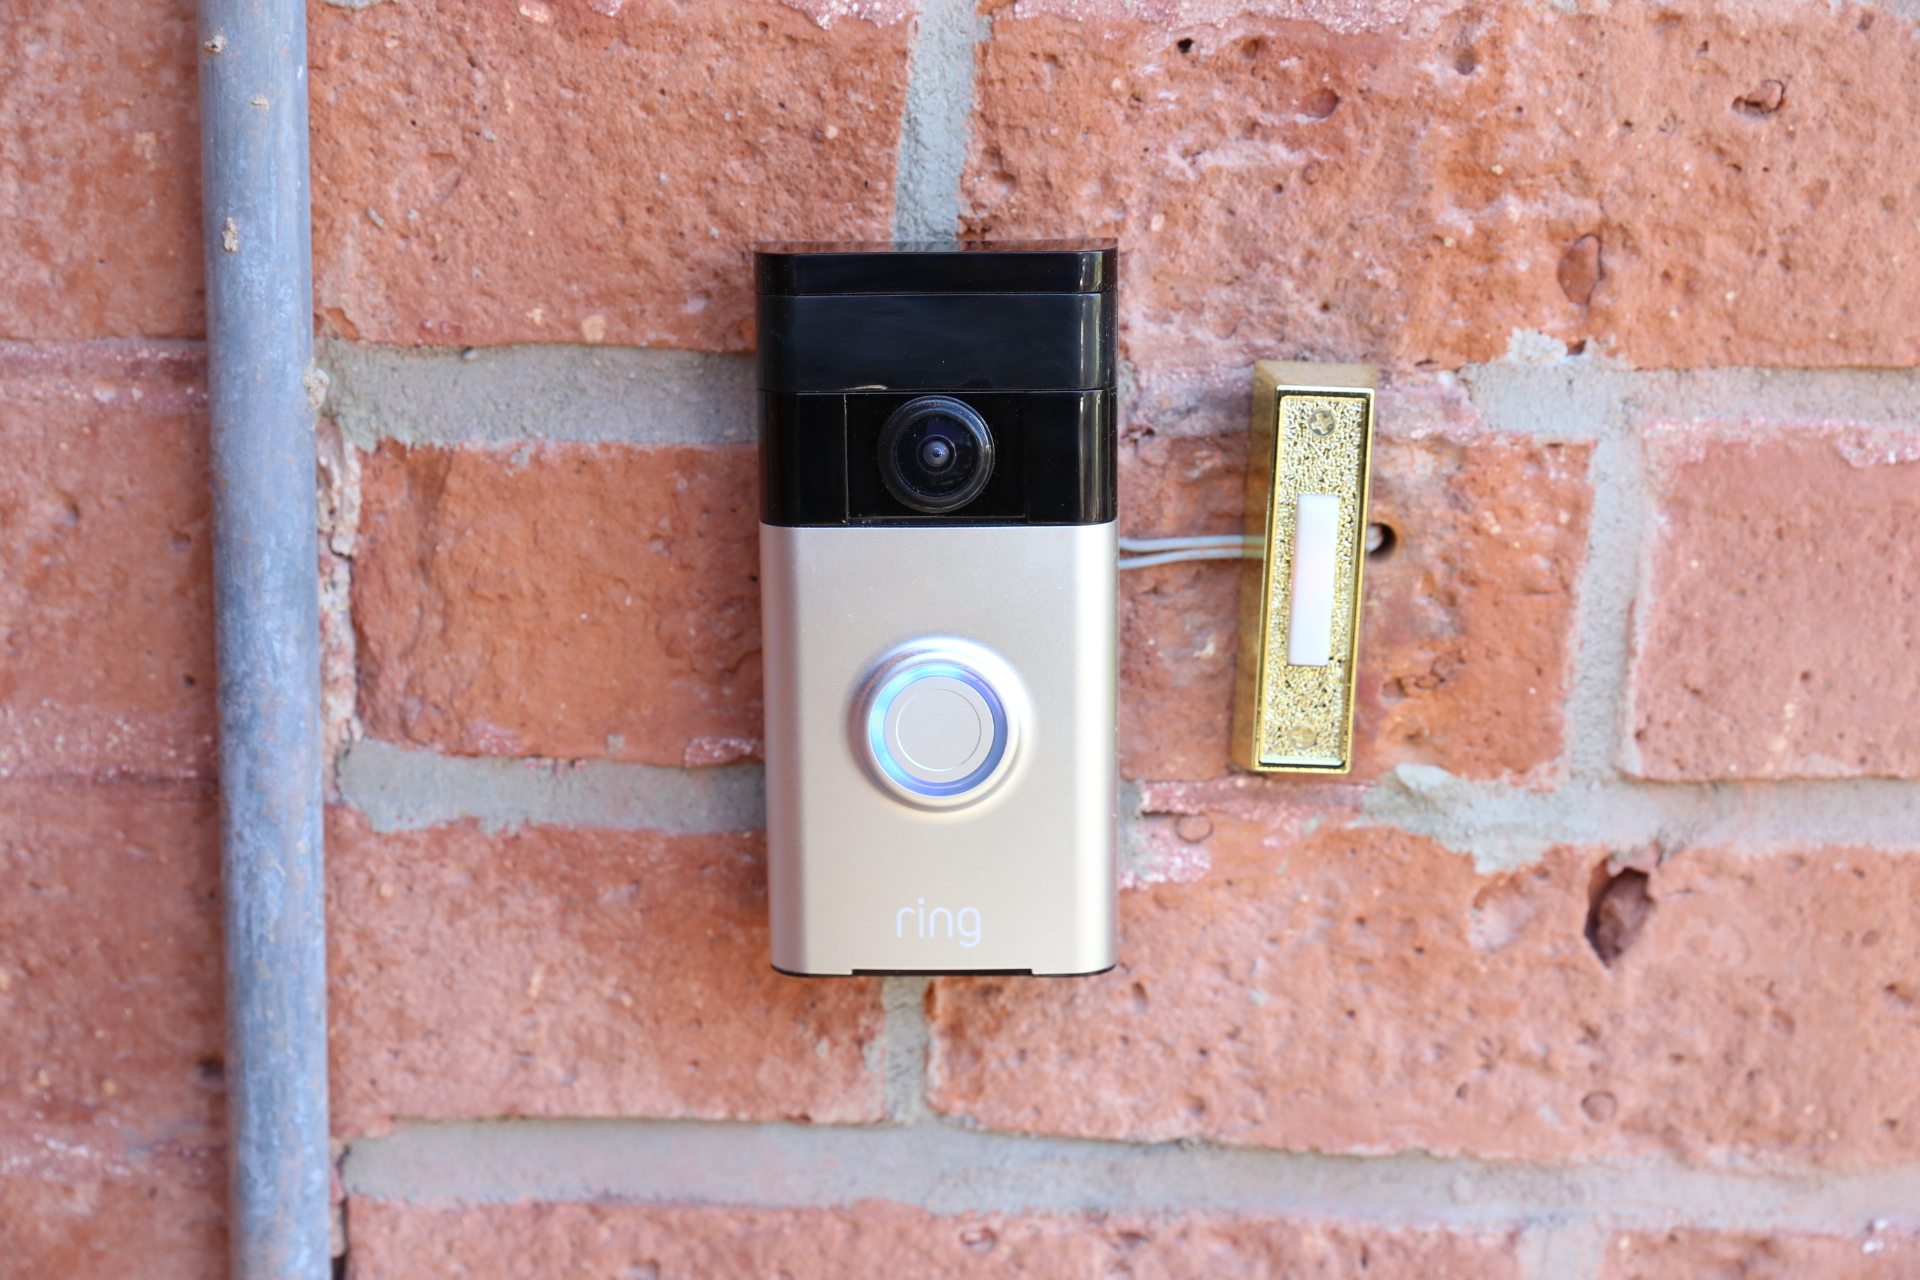 Installing Doorbell Wiring In Brick Wall House Diagram A Ring Video Review You Can Finally Tell The Delivery Guy To Rh Techcrunch Com